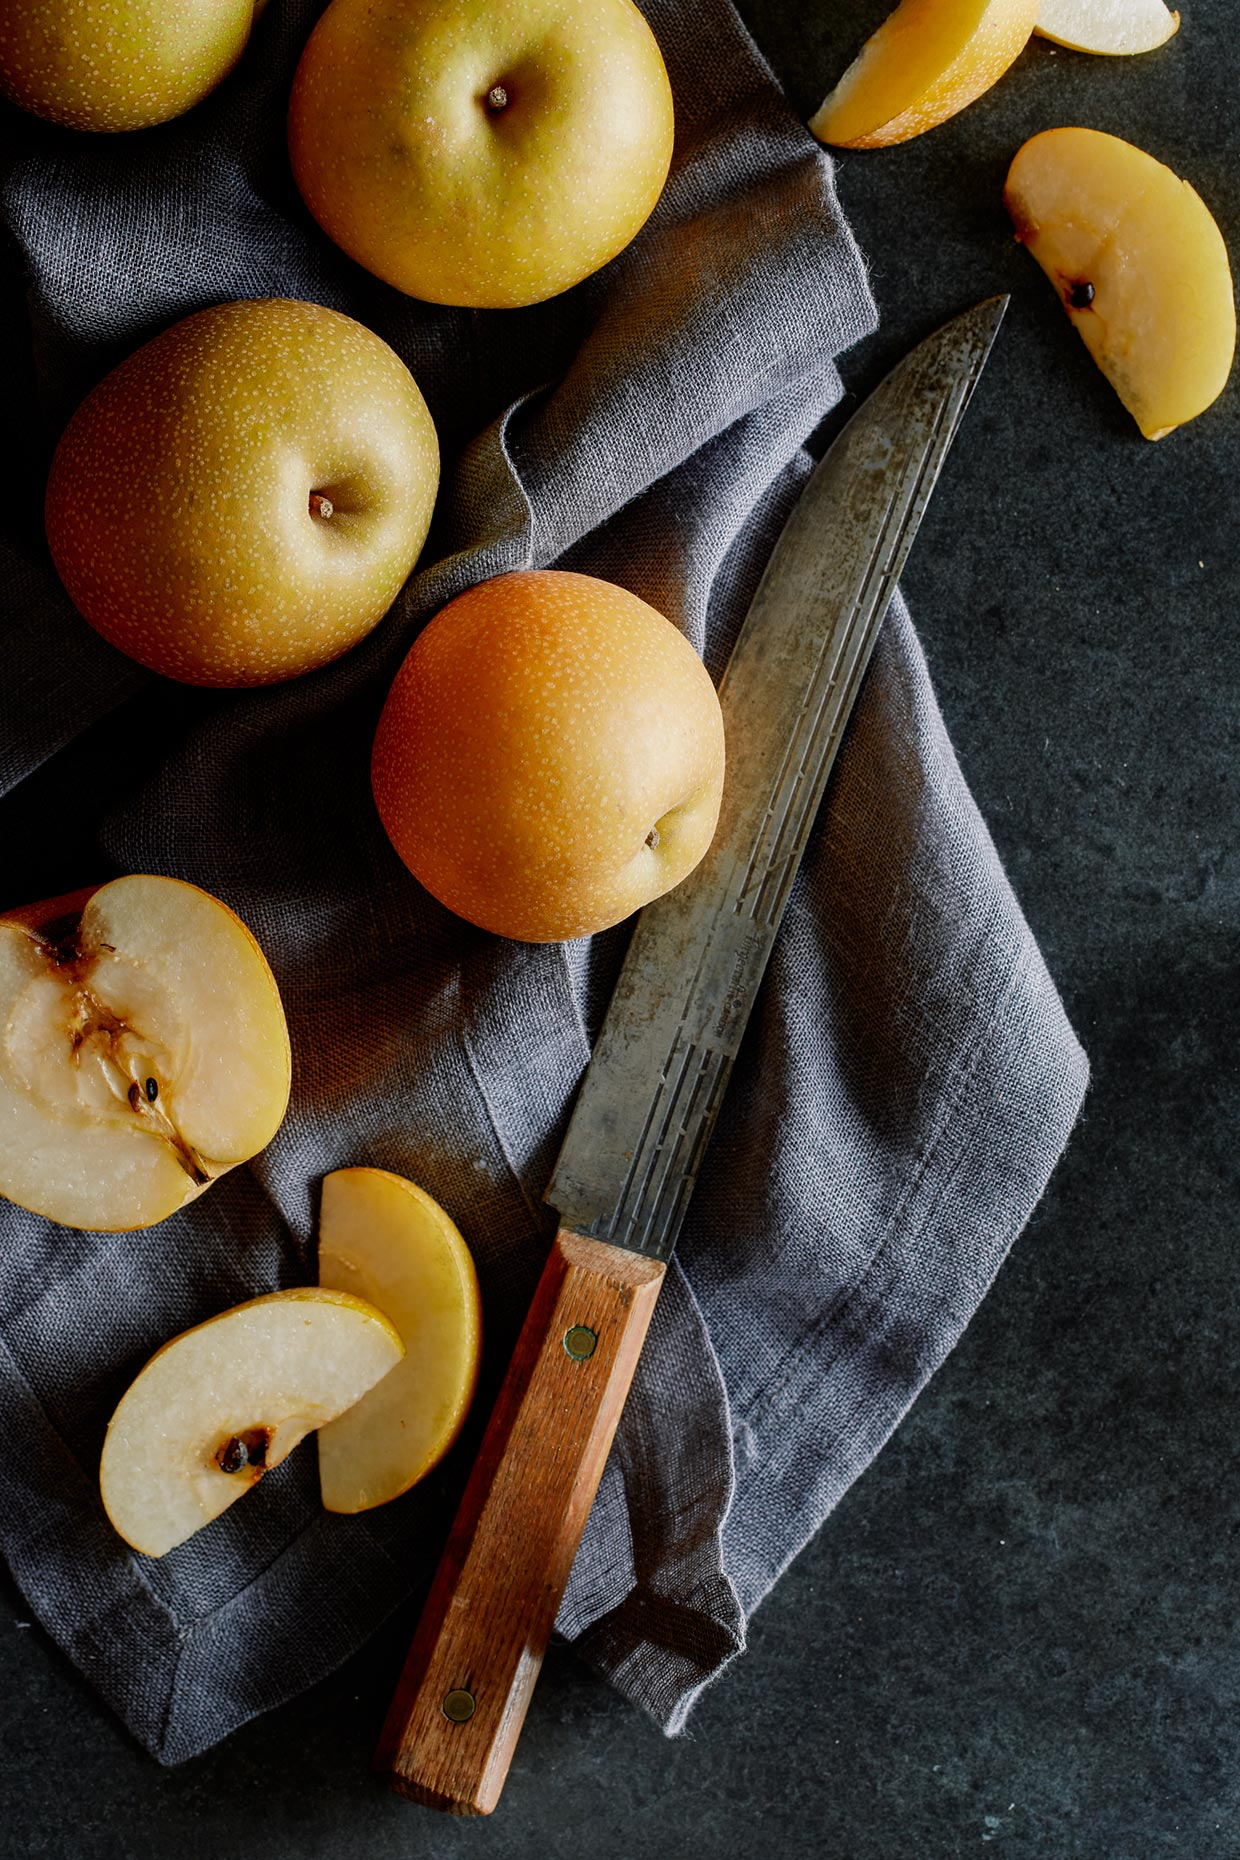 Pears by Teri Lyn Fisher - a commercial food photographer